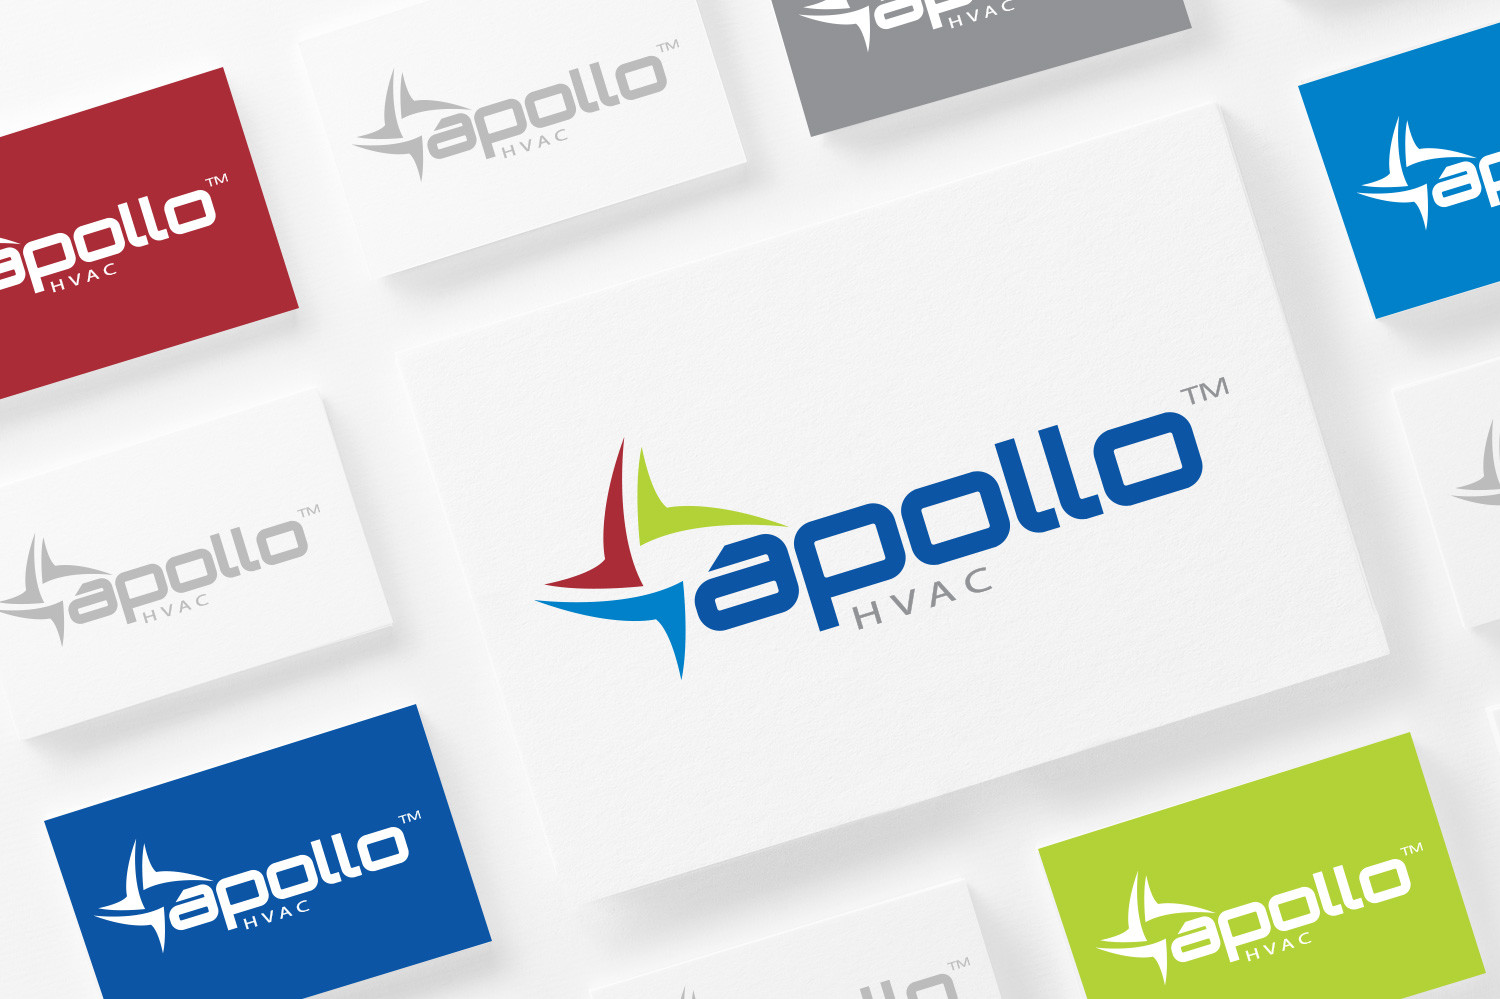 Apollo_CorporateIdentity